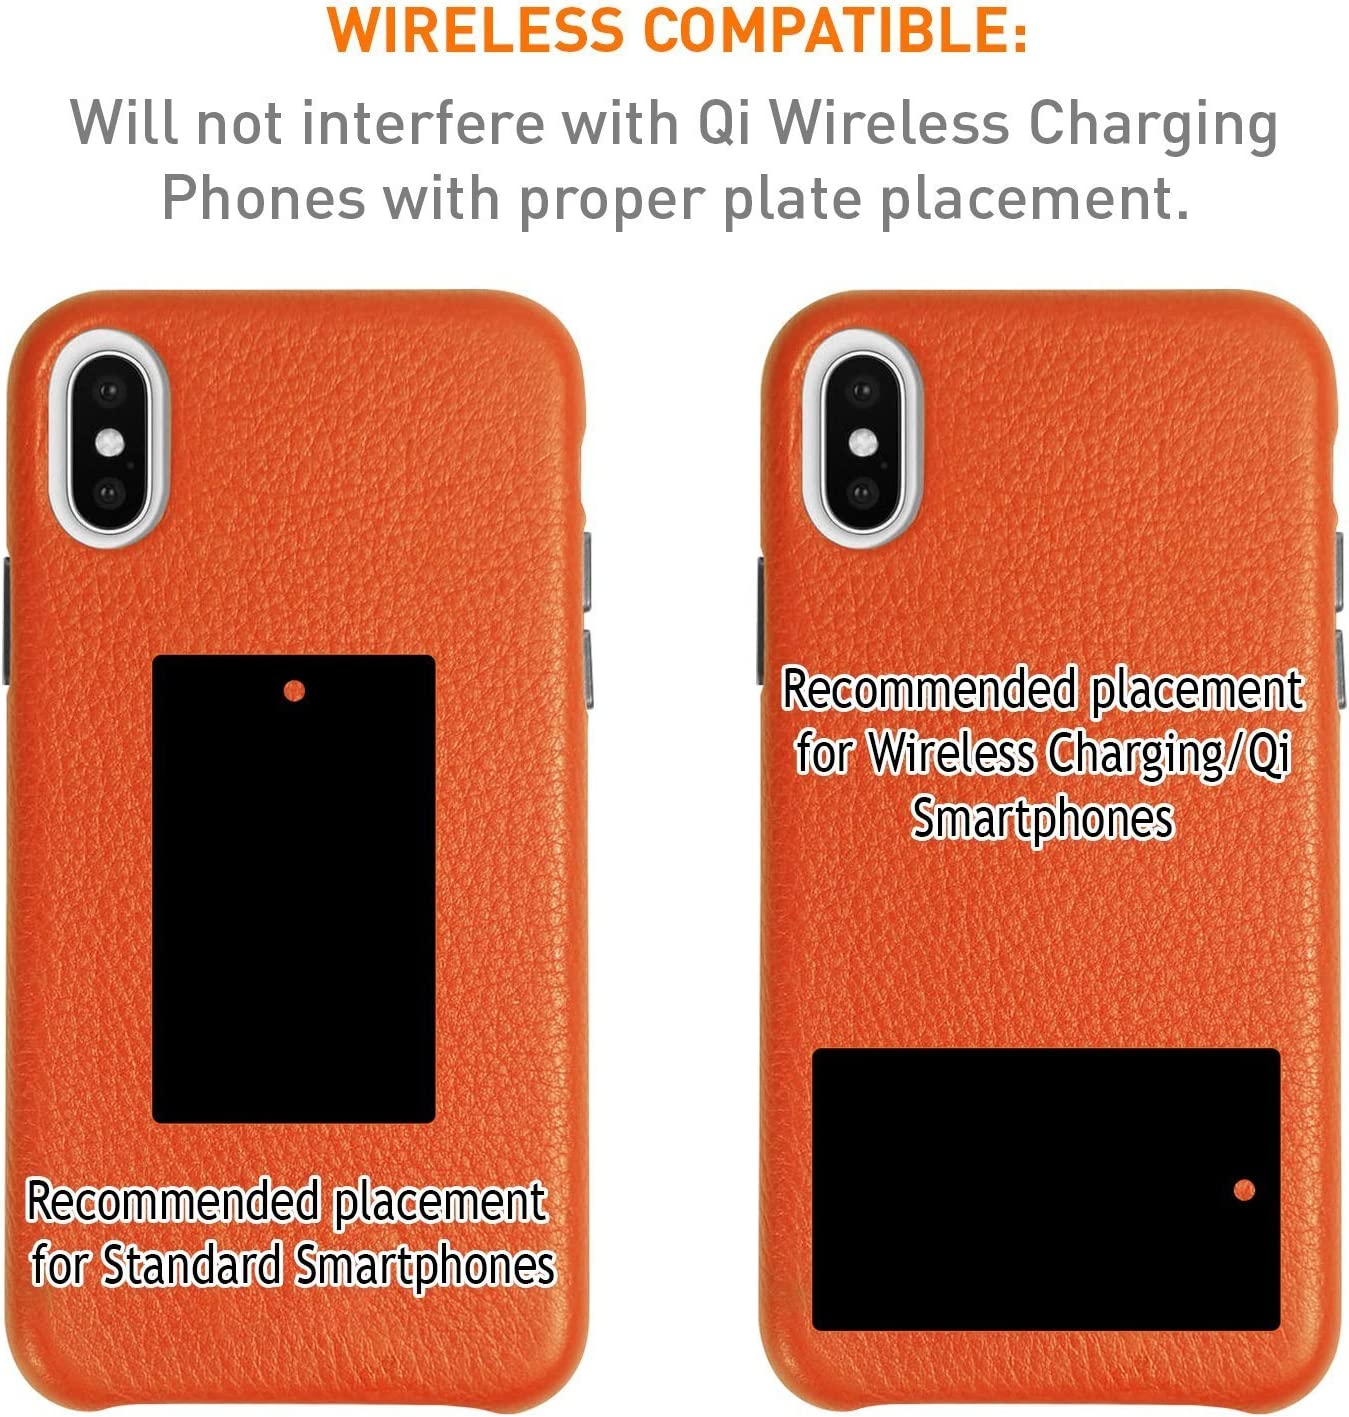 Magnetic Vehicle//Desktop Dock//Mount w// 2 mounting Options Works w//Most Phone and case Combinations Apple MFI Certified ChargeDock iPhone Xs//Xs Max//X // 8//8 Plus // 7//7 Plus // 6